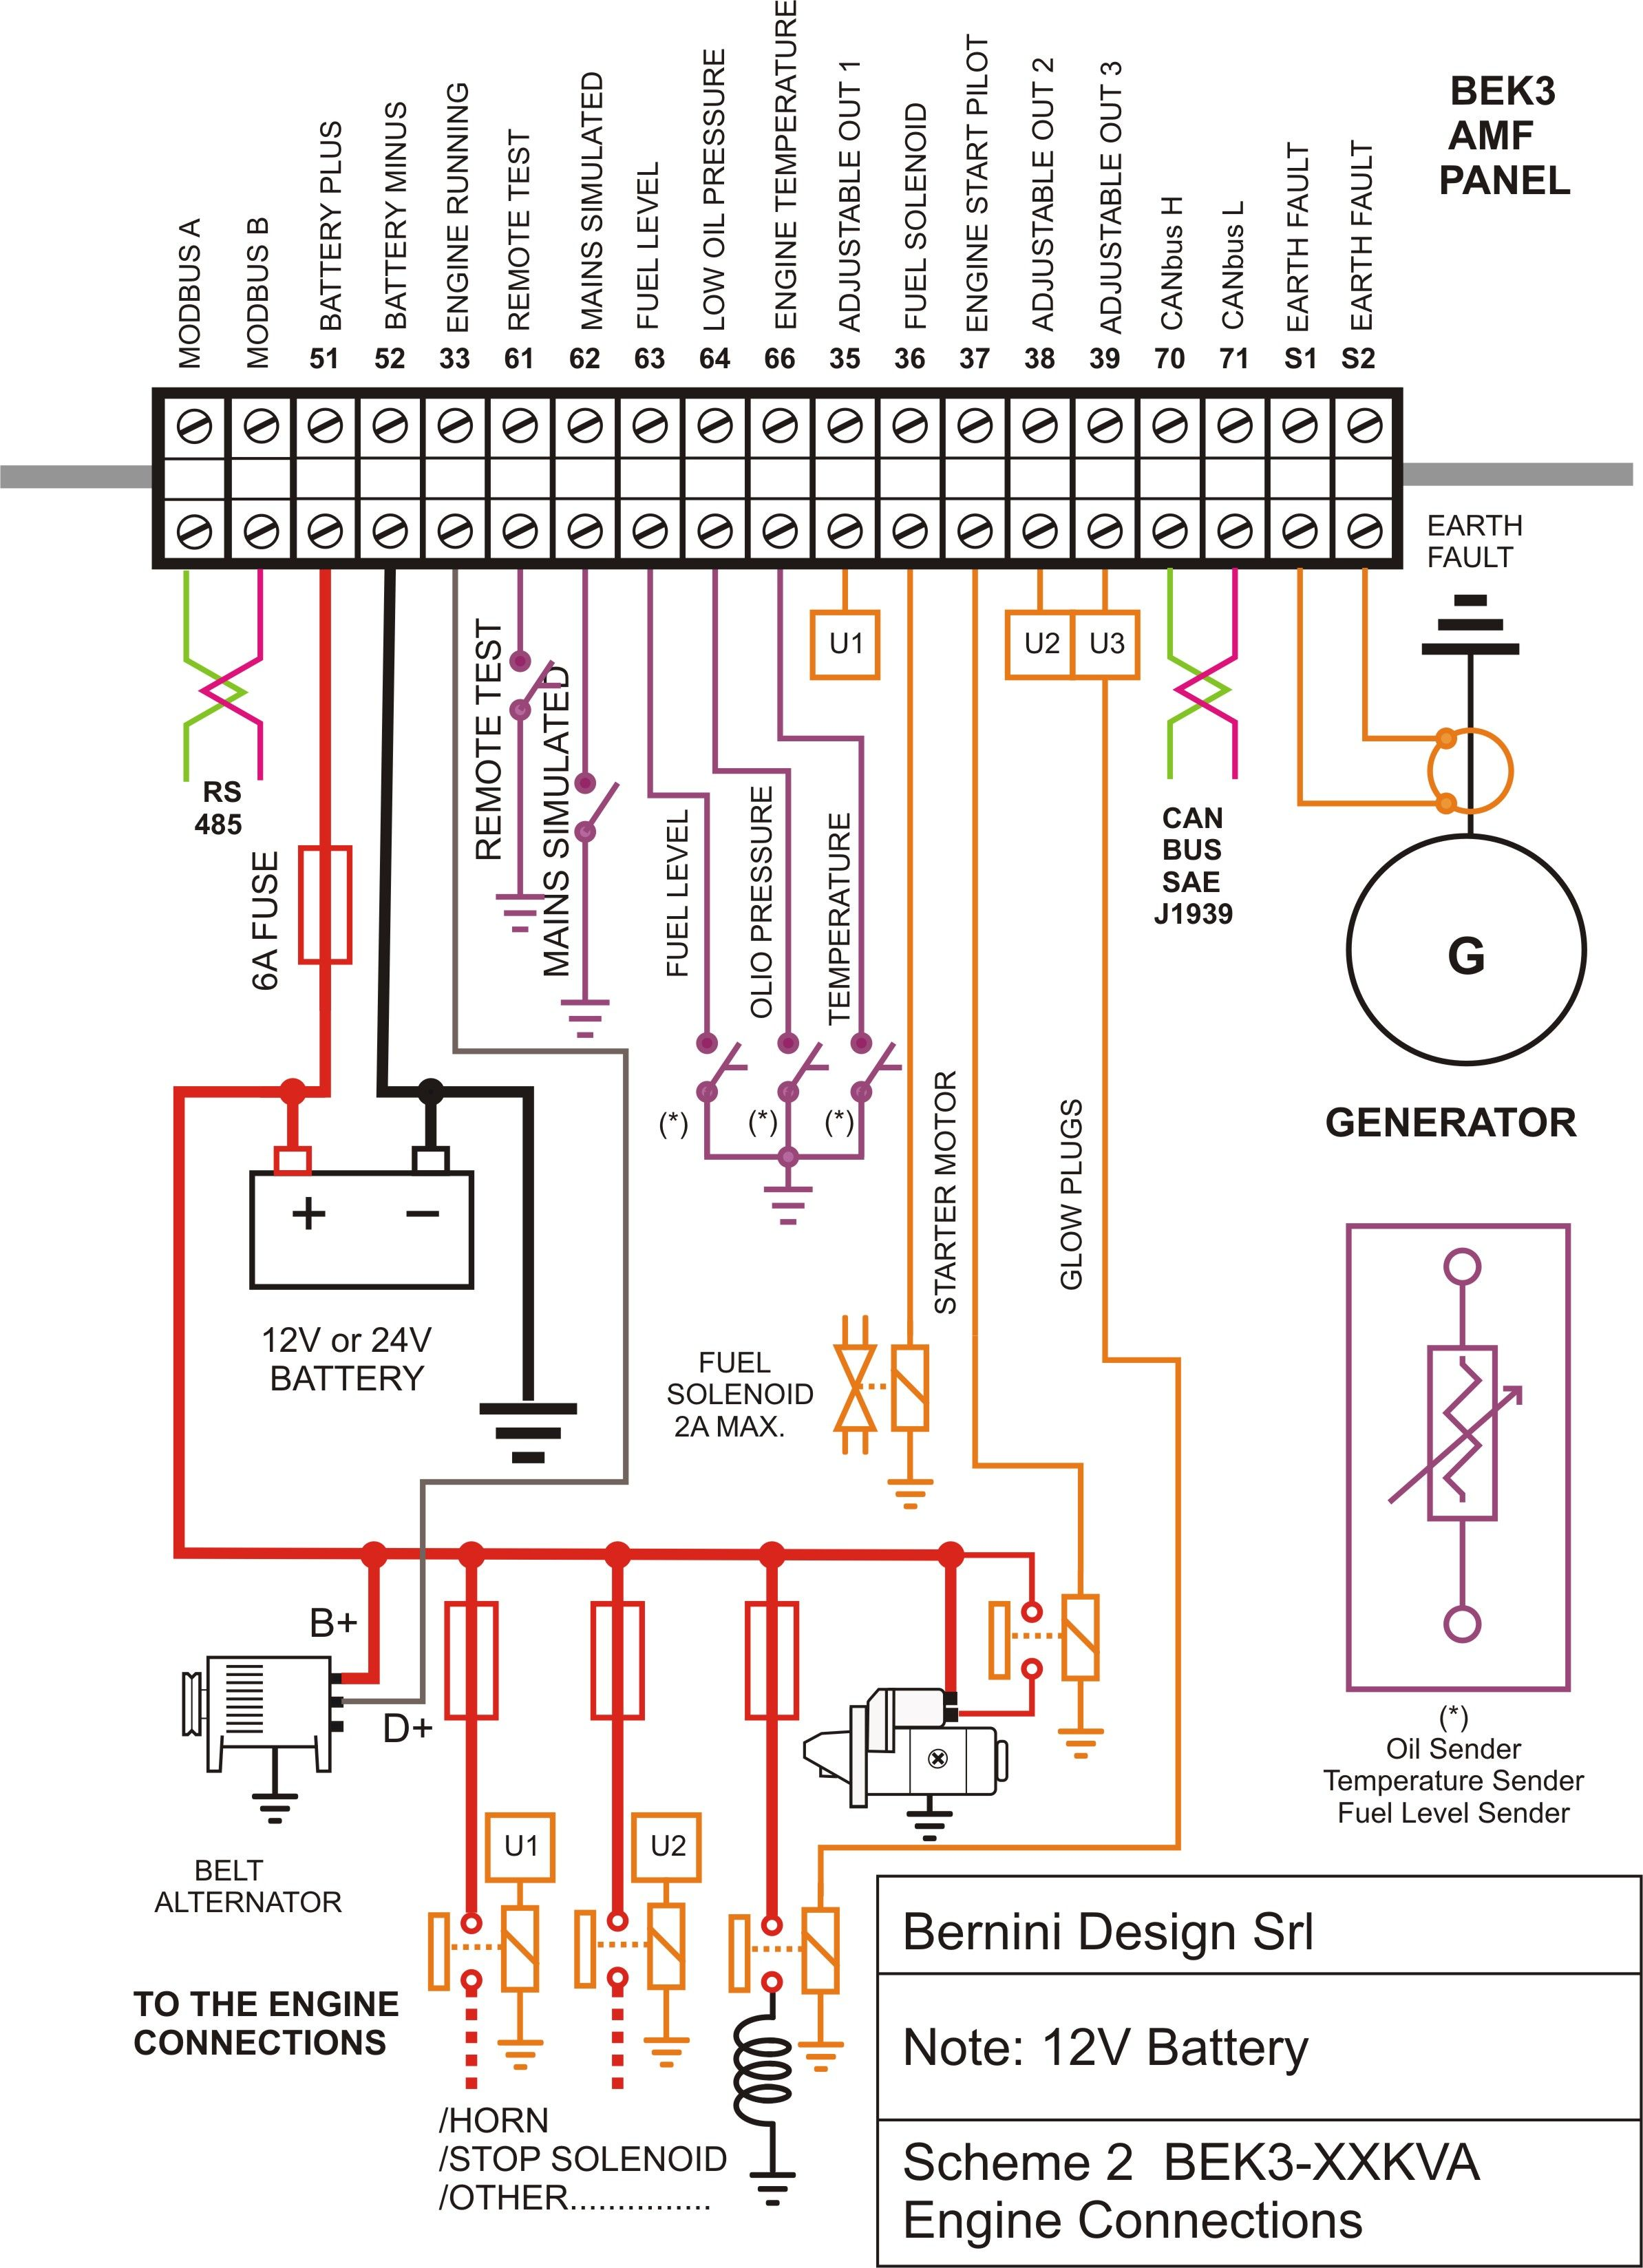 medium resolution of generator control wiring diagram wiring diagram home connection diagram olympian generator